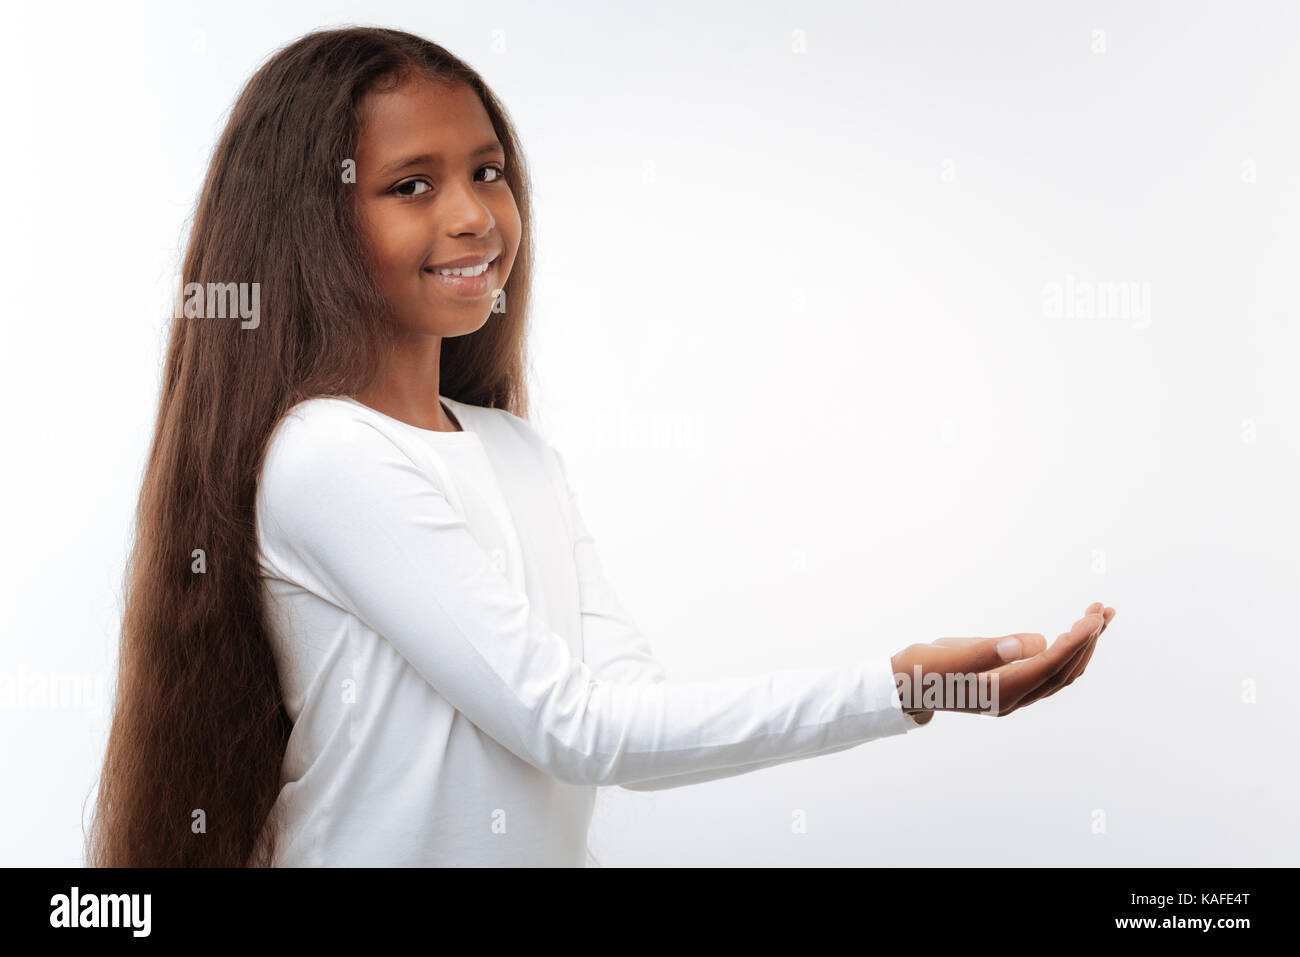 Smiling pre-teen girl cupping her hands in front of her - Stock Image